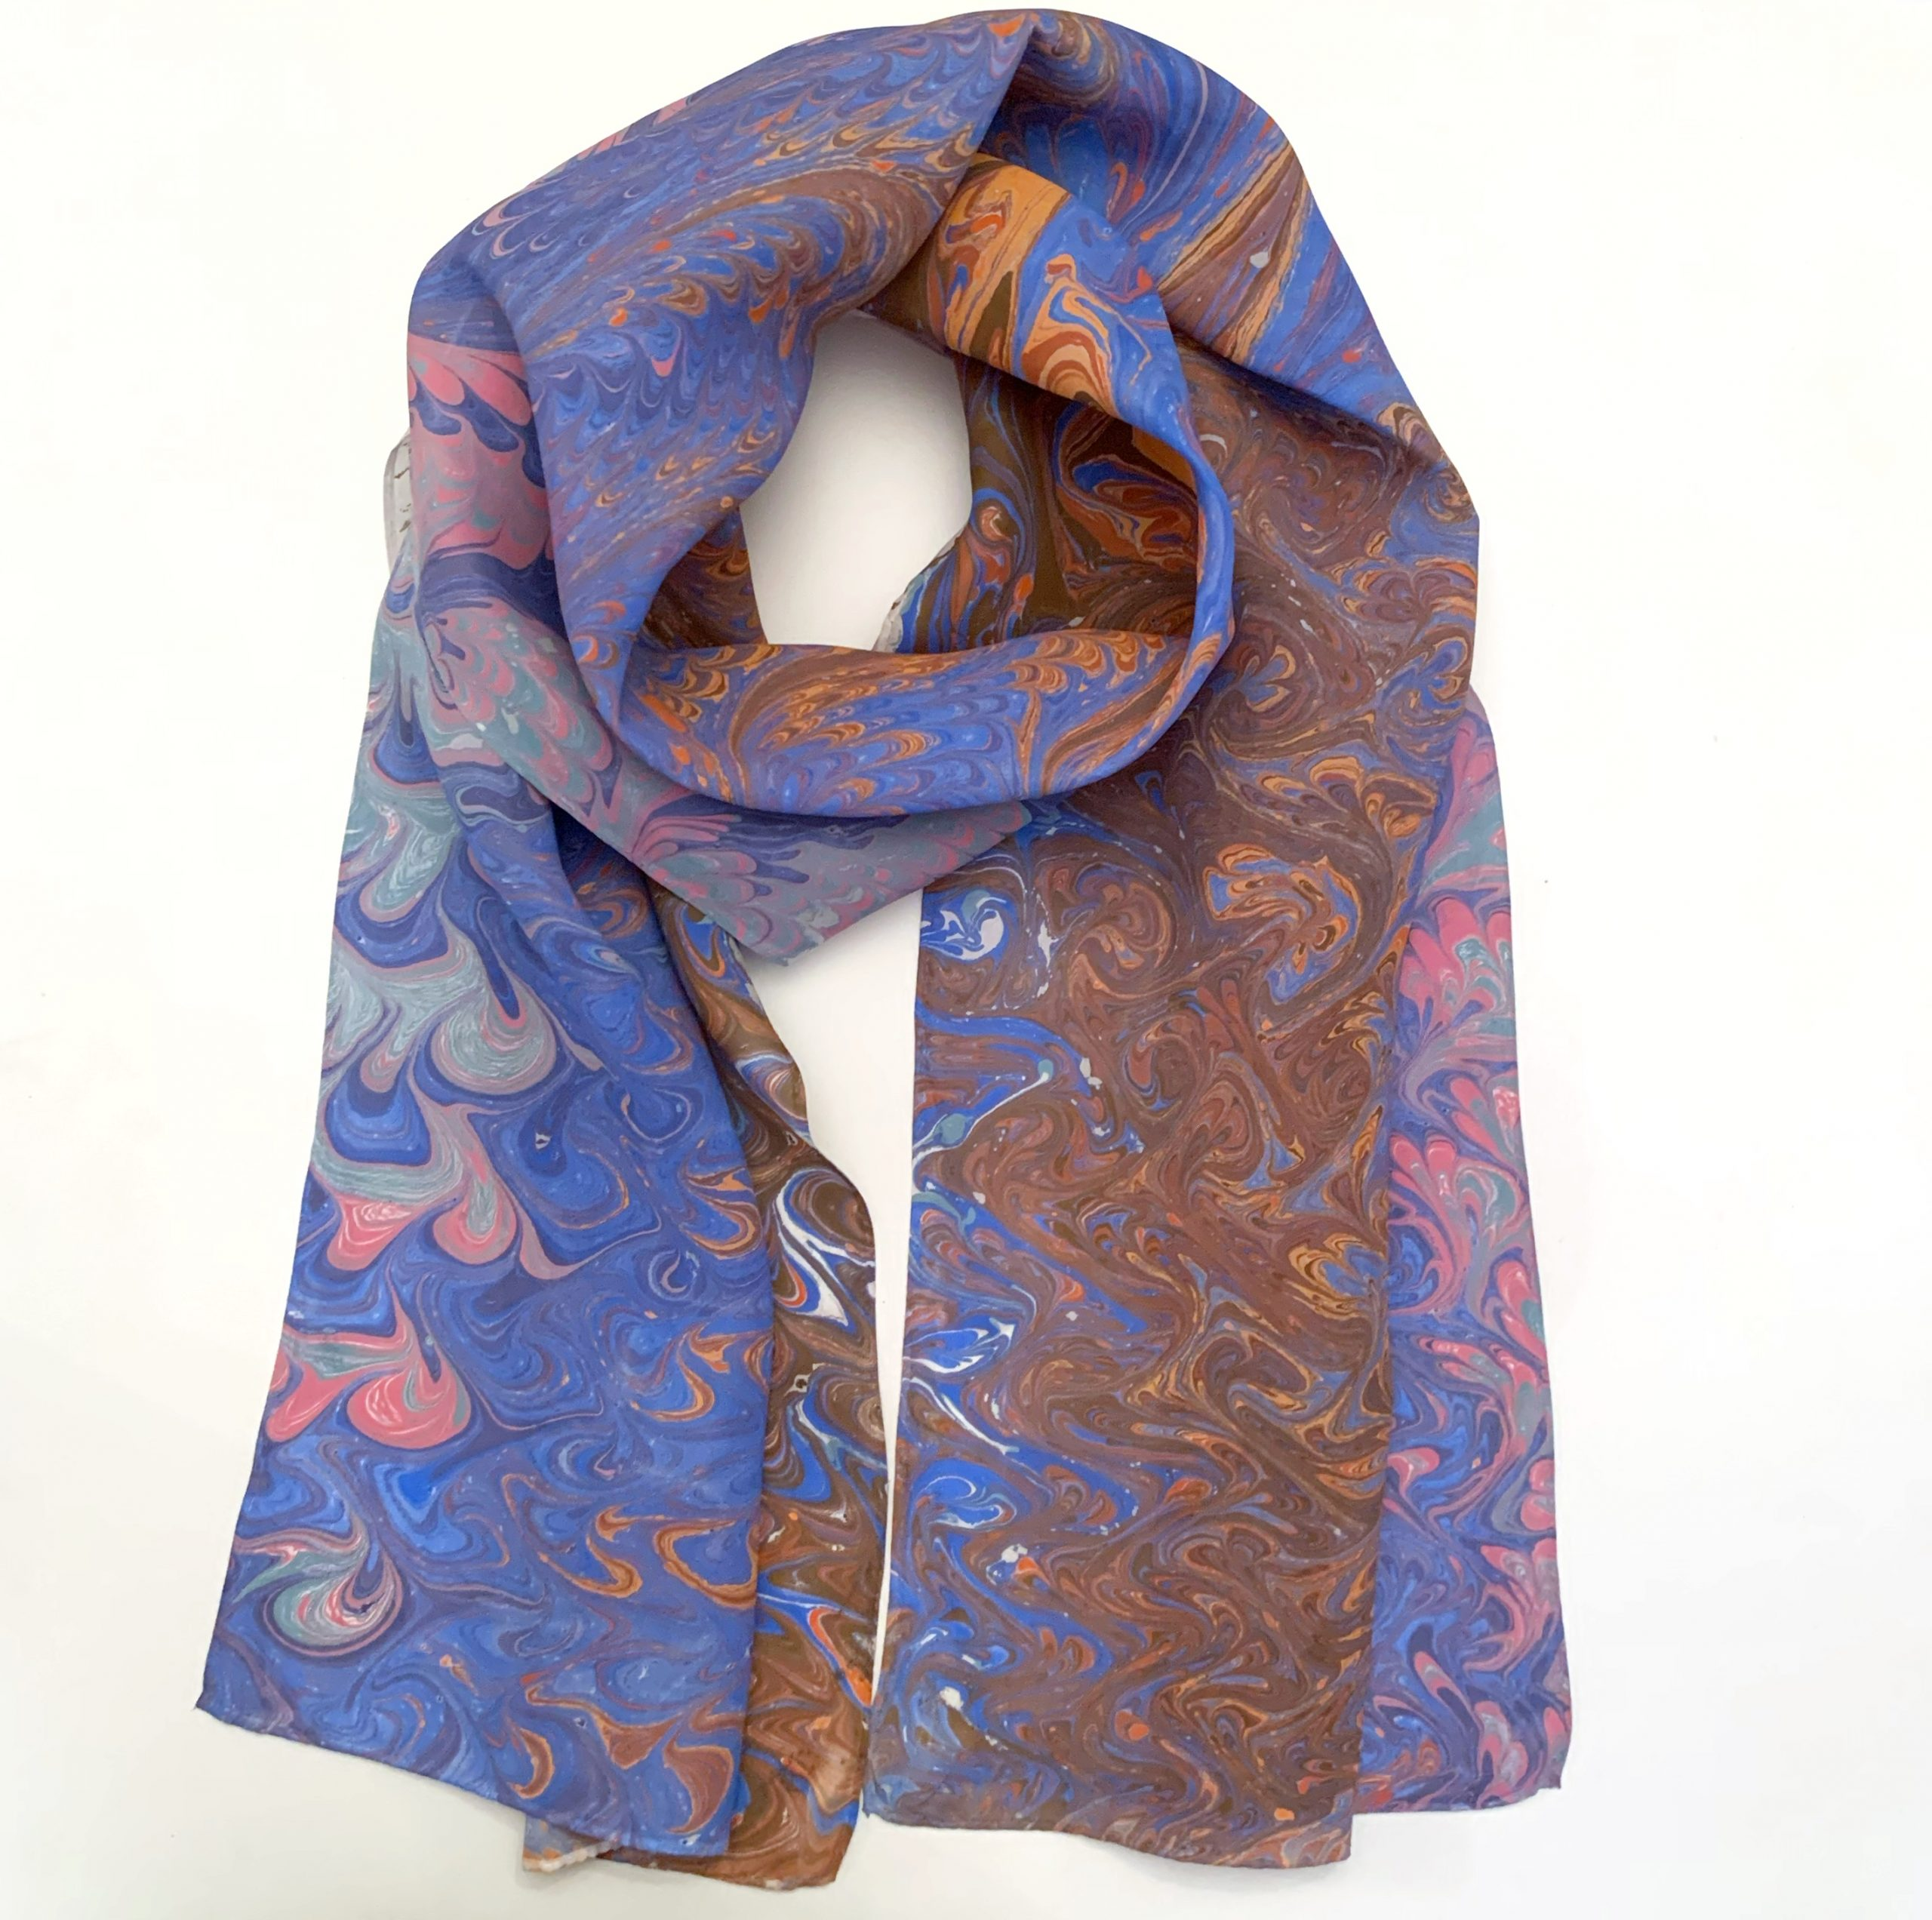 Desert Inspired Scarf Blue and Burnt Oranges